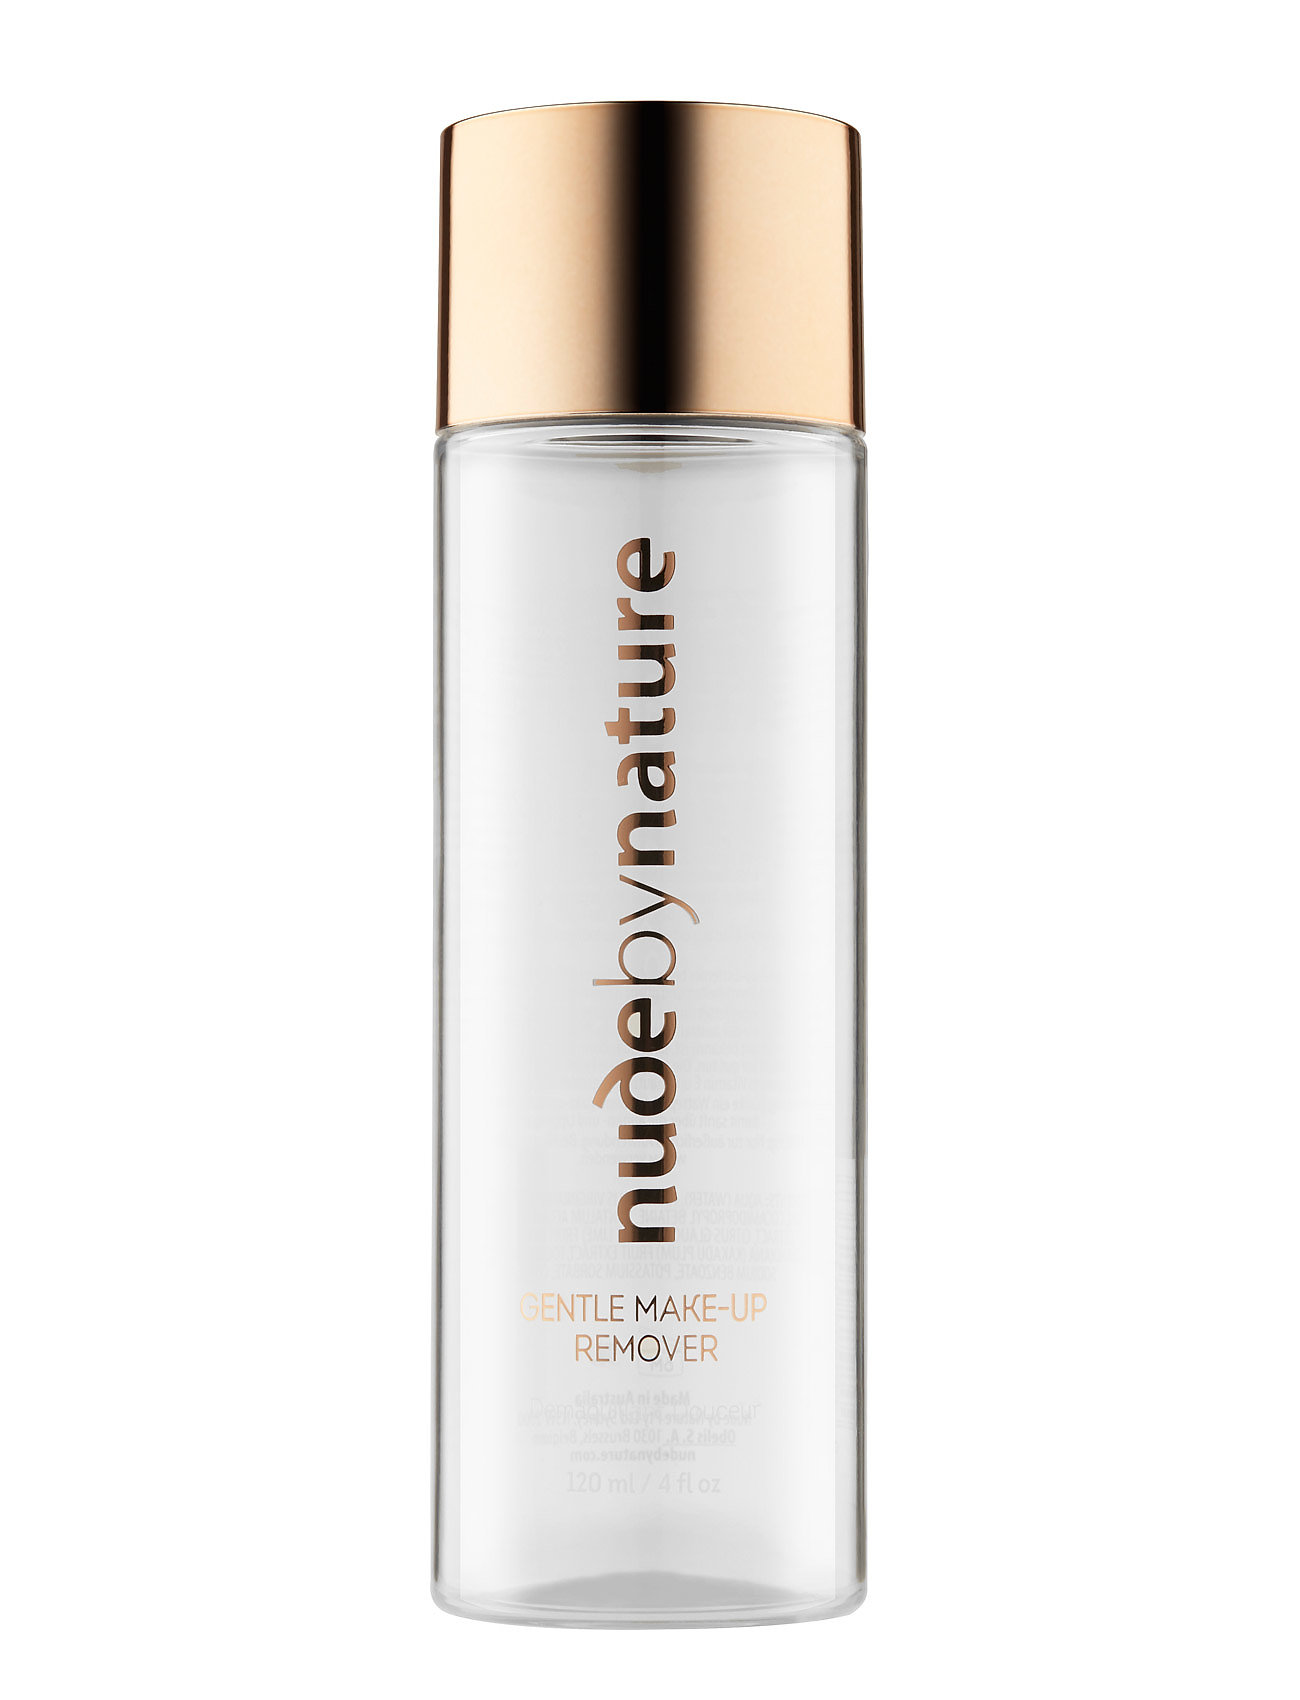 Image of Other Gentle Make-Upremover Makeupfjerner Nude Nude By Nature (2778814135)